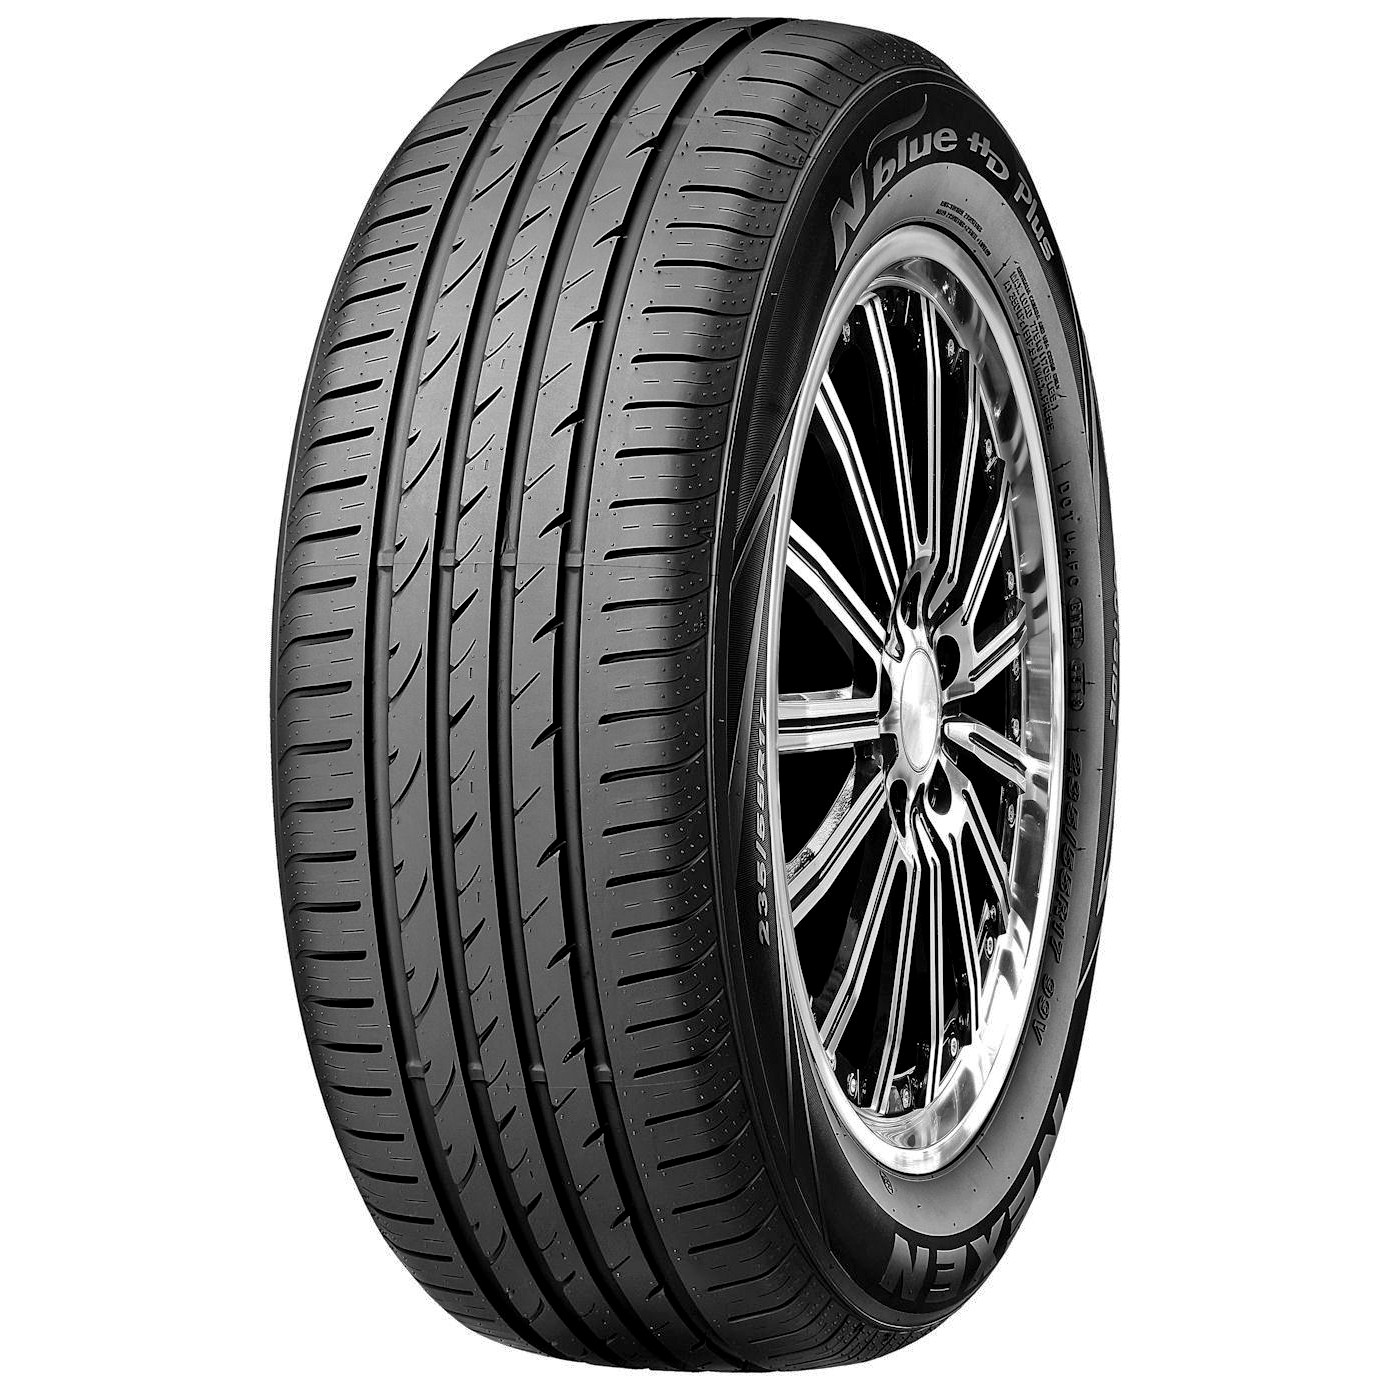 Летняя шина Nexen N'blue HD Plus 165/70 R13 79T